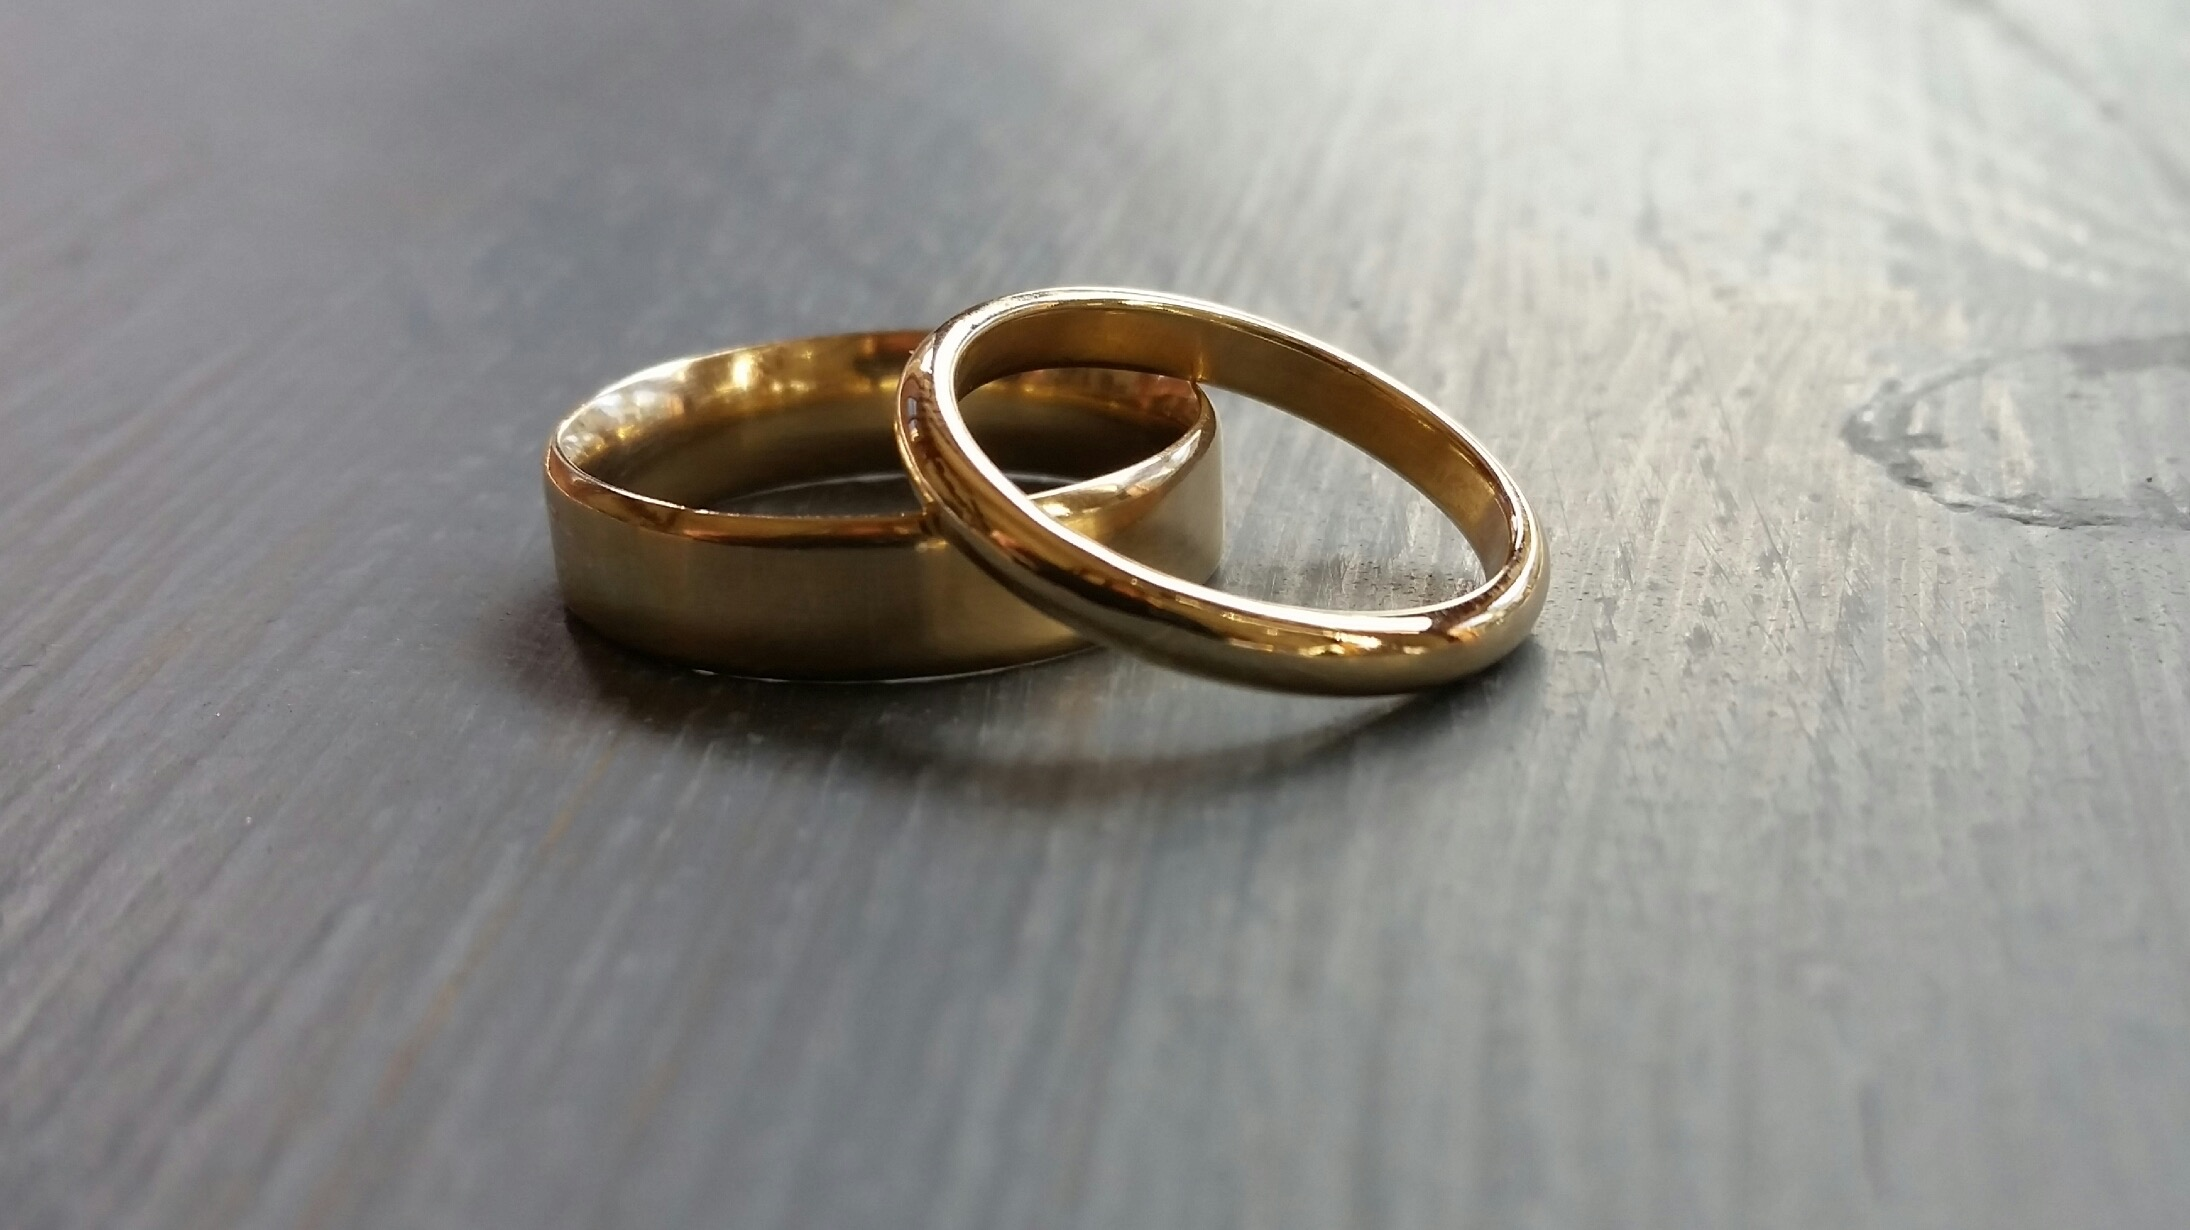 Making your own Wedding Rings - Come and make your own wedding rings no experience necessary